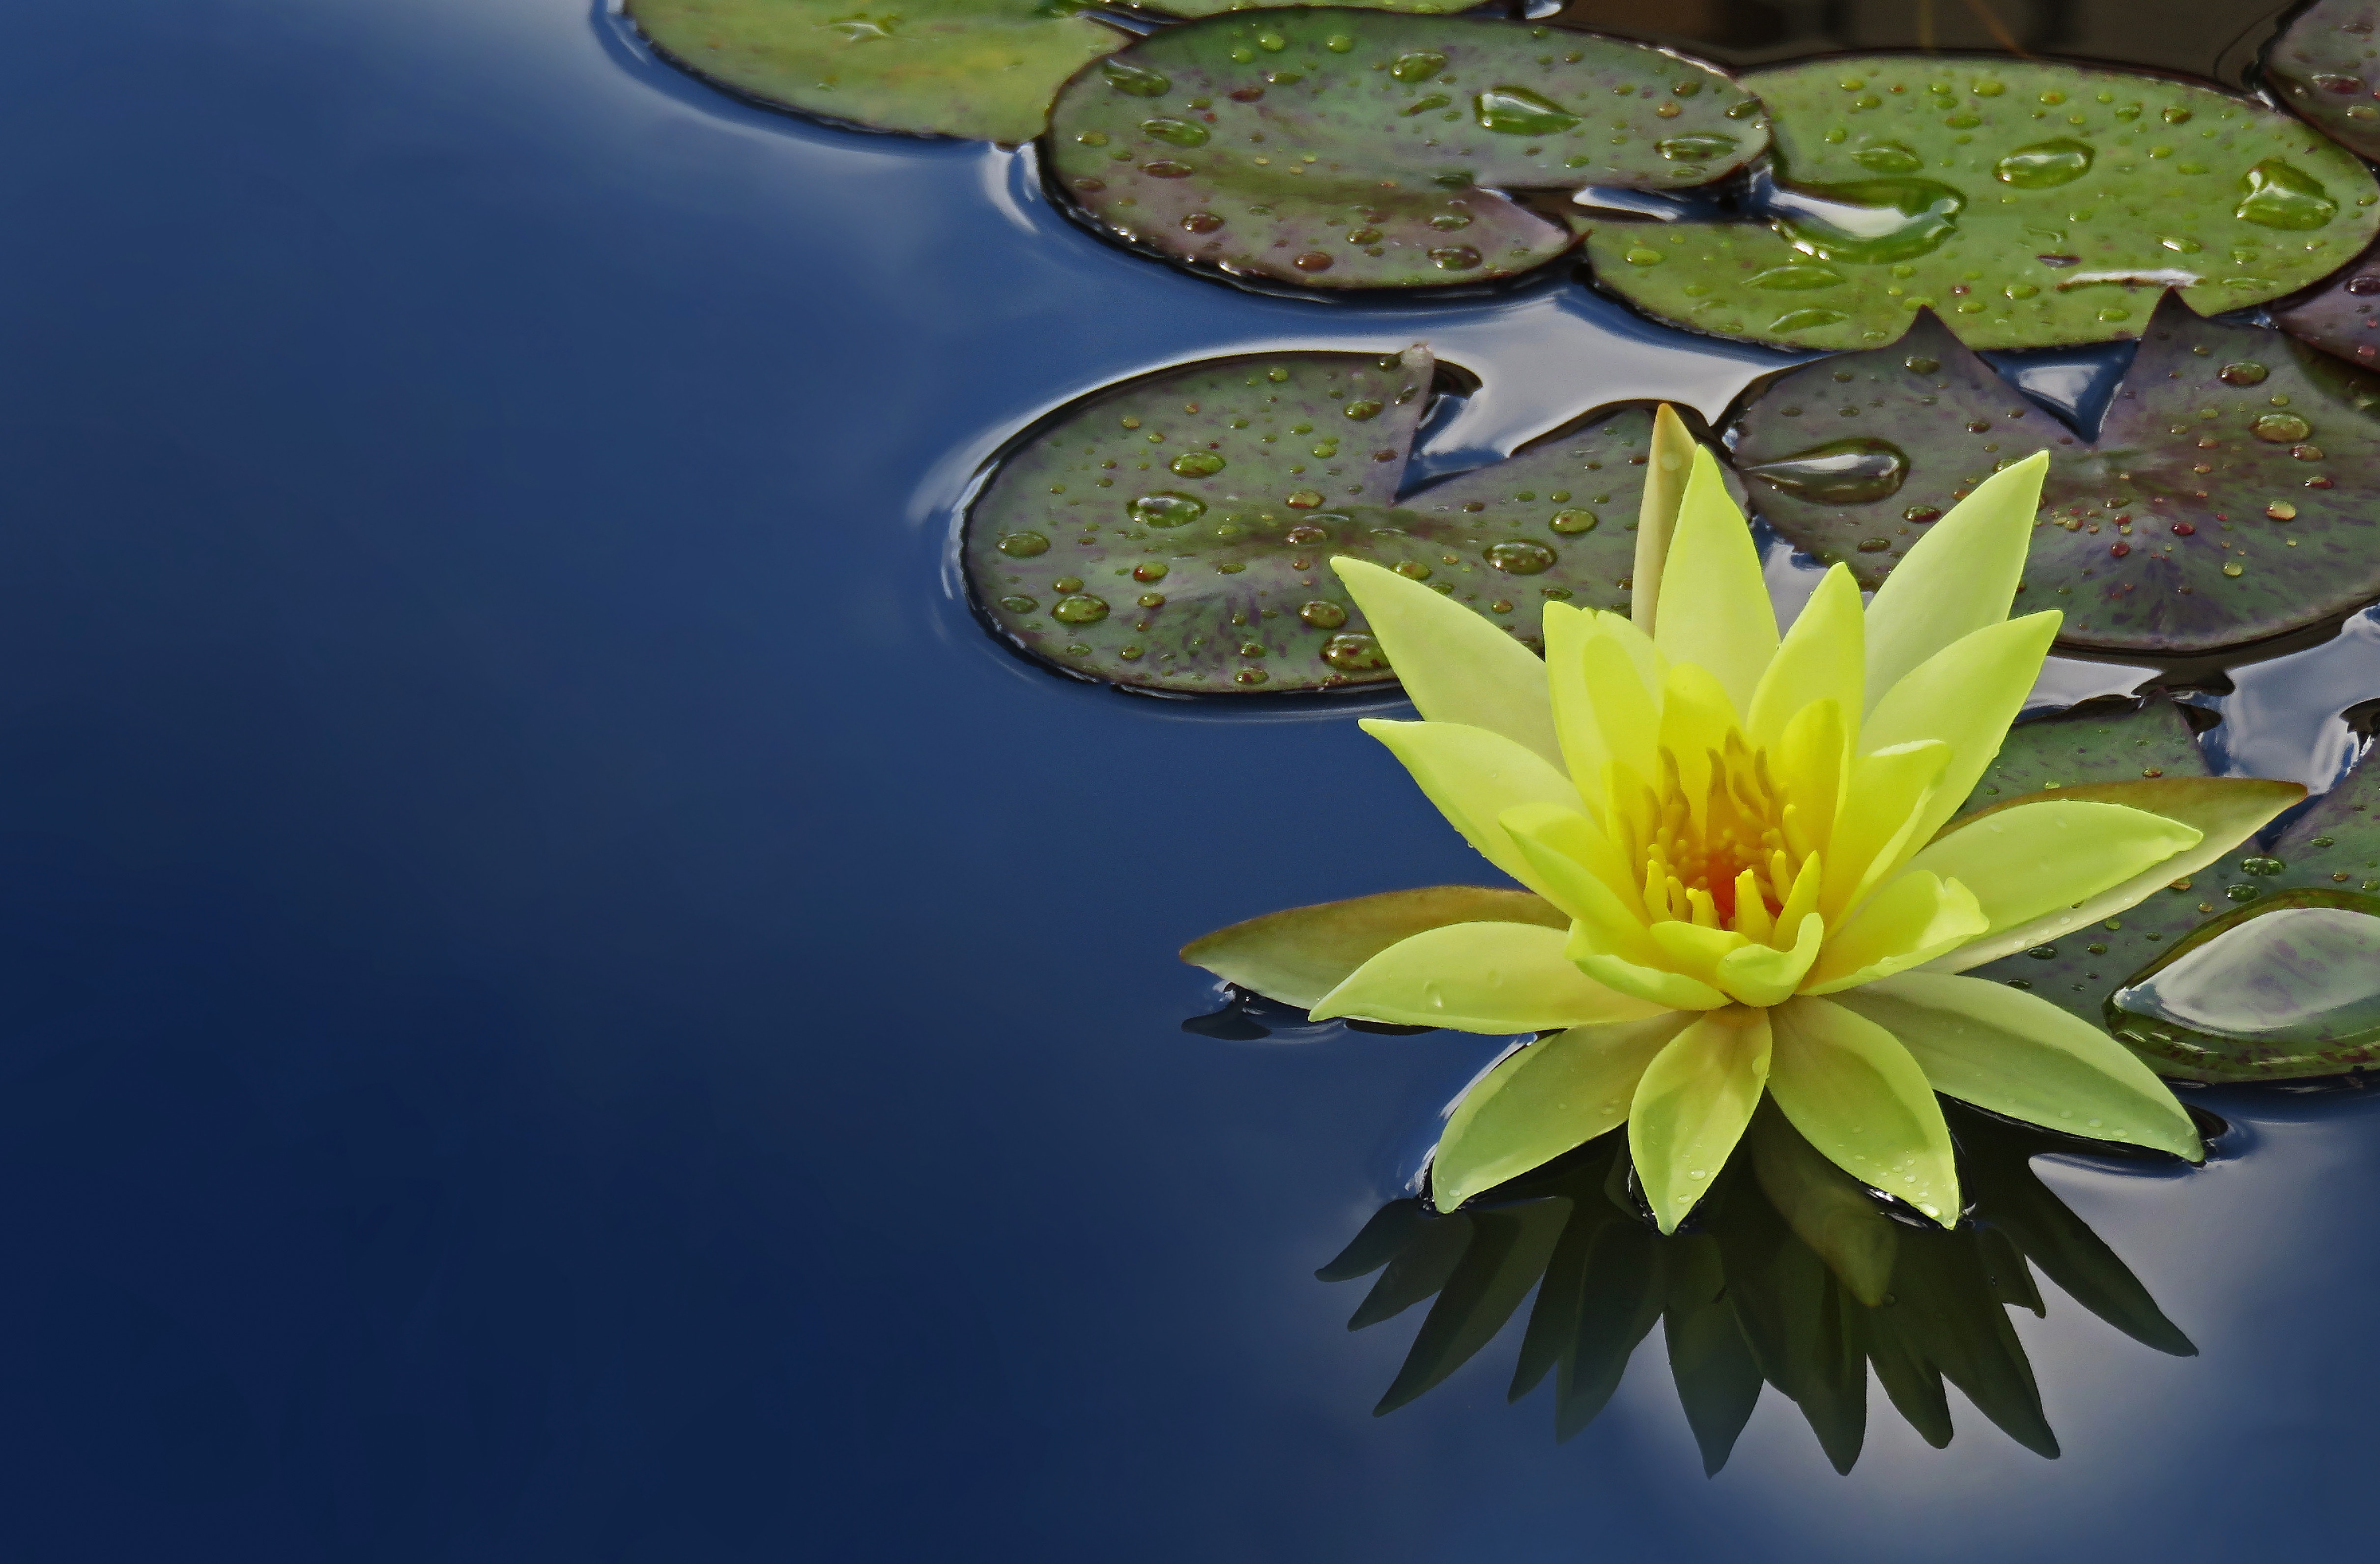 The worlds first flower most likely looked like todays water lily how would you feel if someone told you that all of the flowers in the world come from one ancestor while it may seem dramatic its true according to a izmirmasajfo